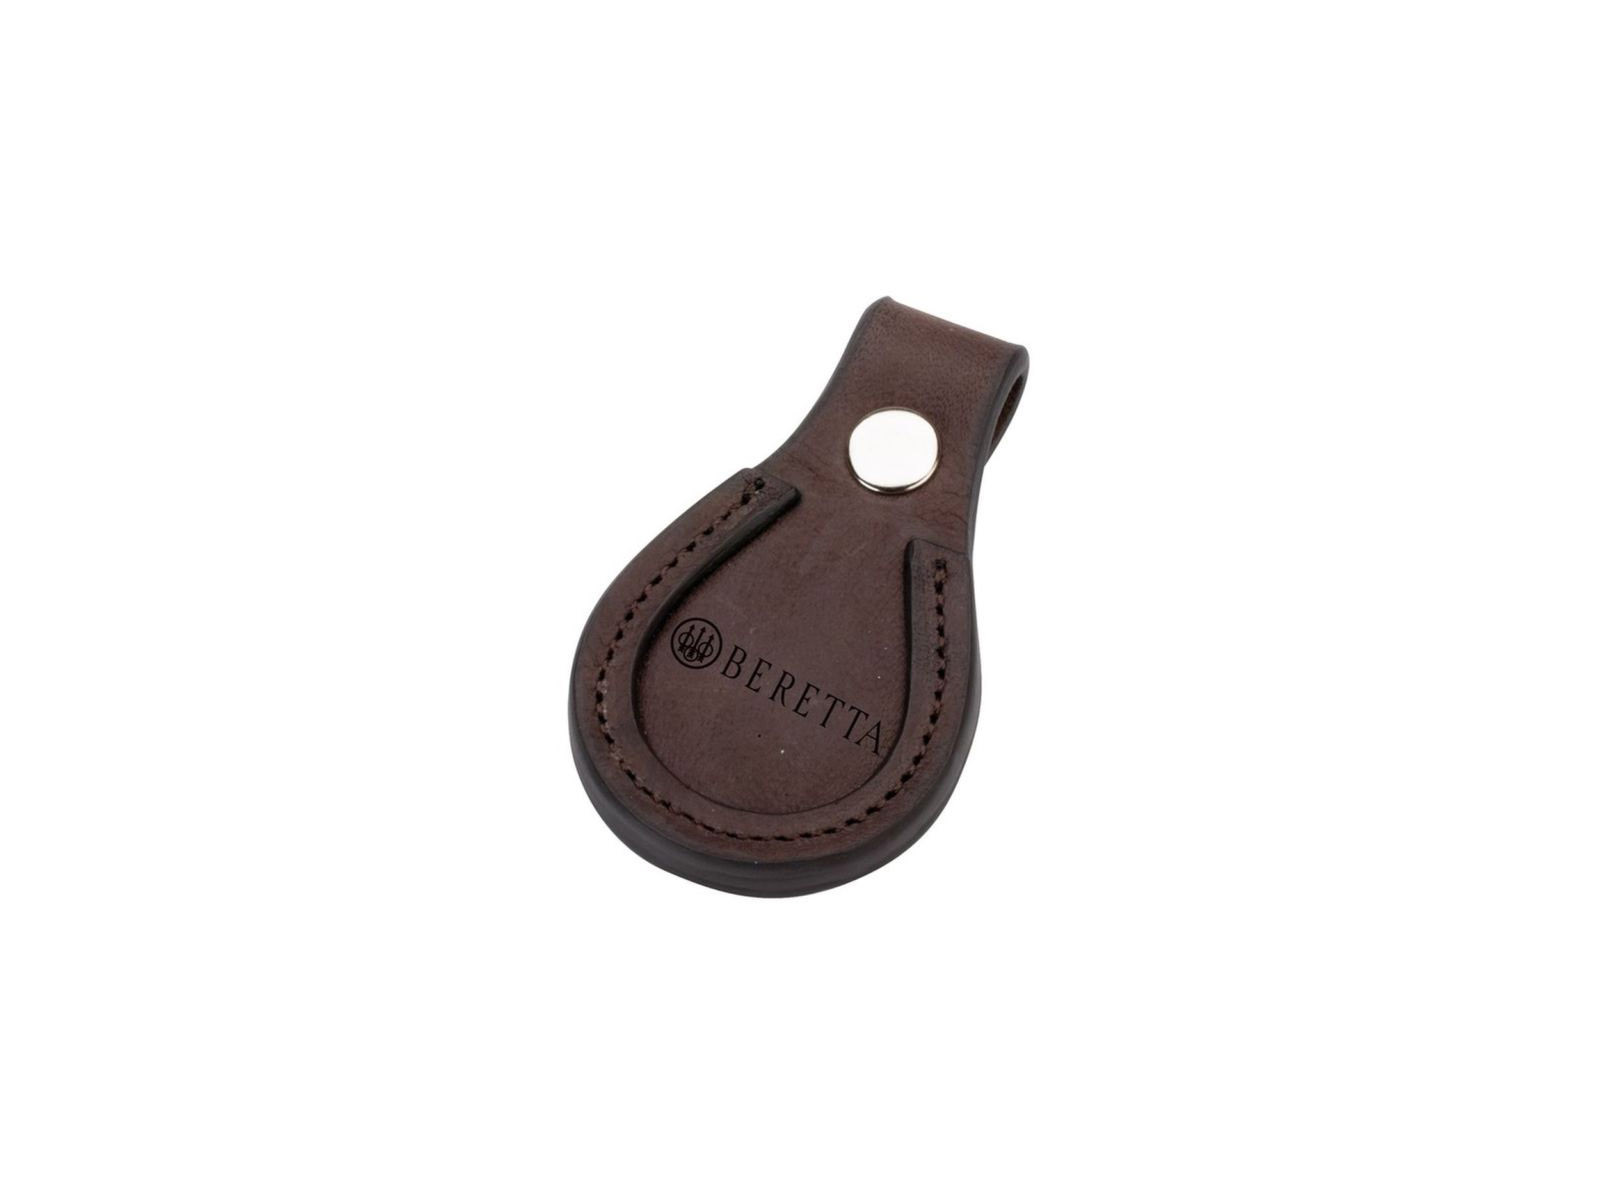 Beretta Barrel Rest/Toe Protector